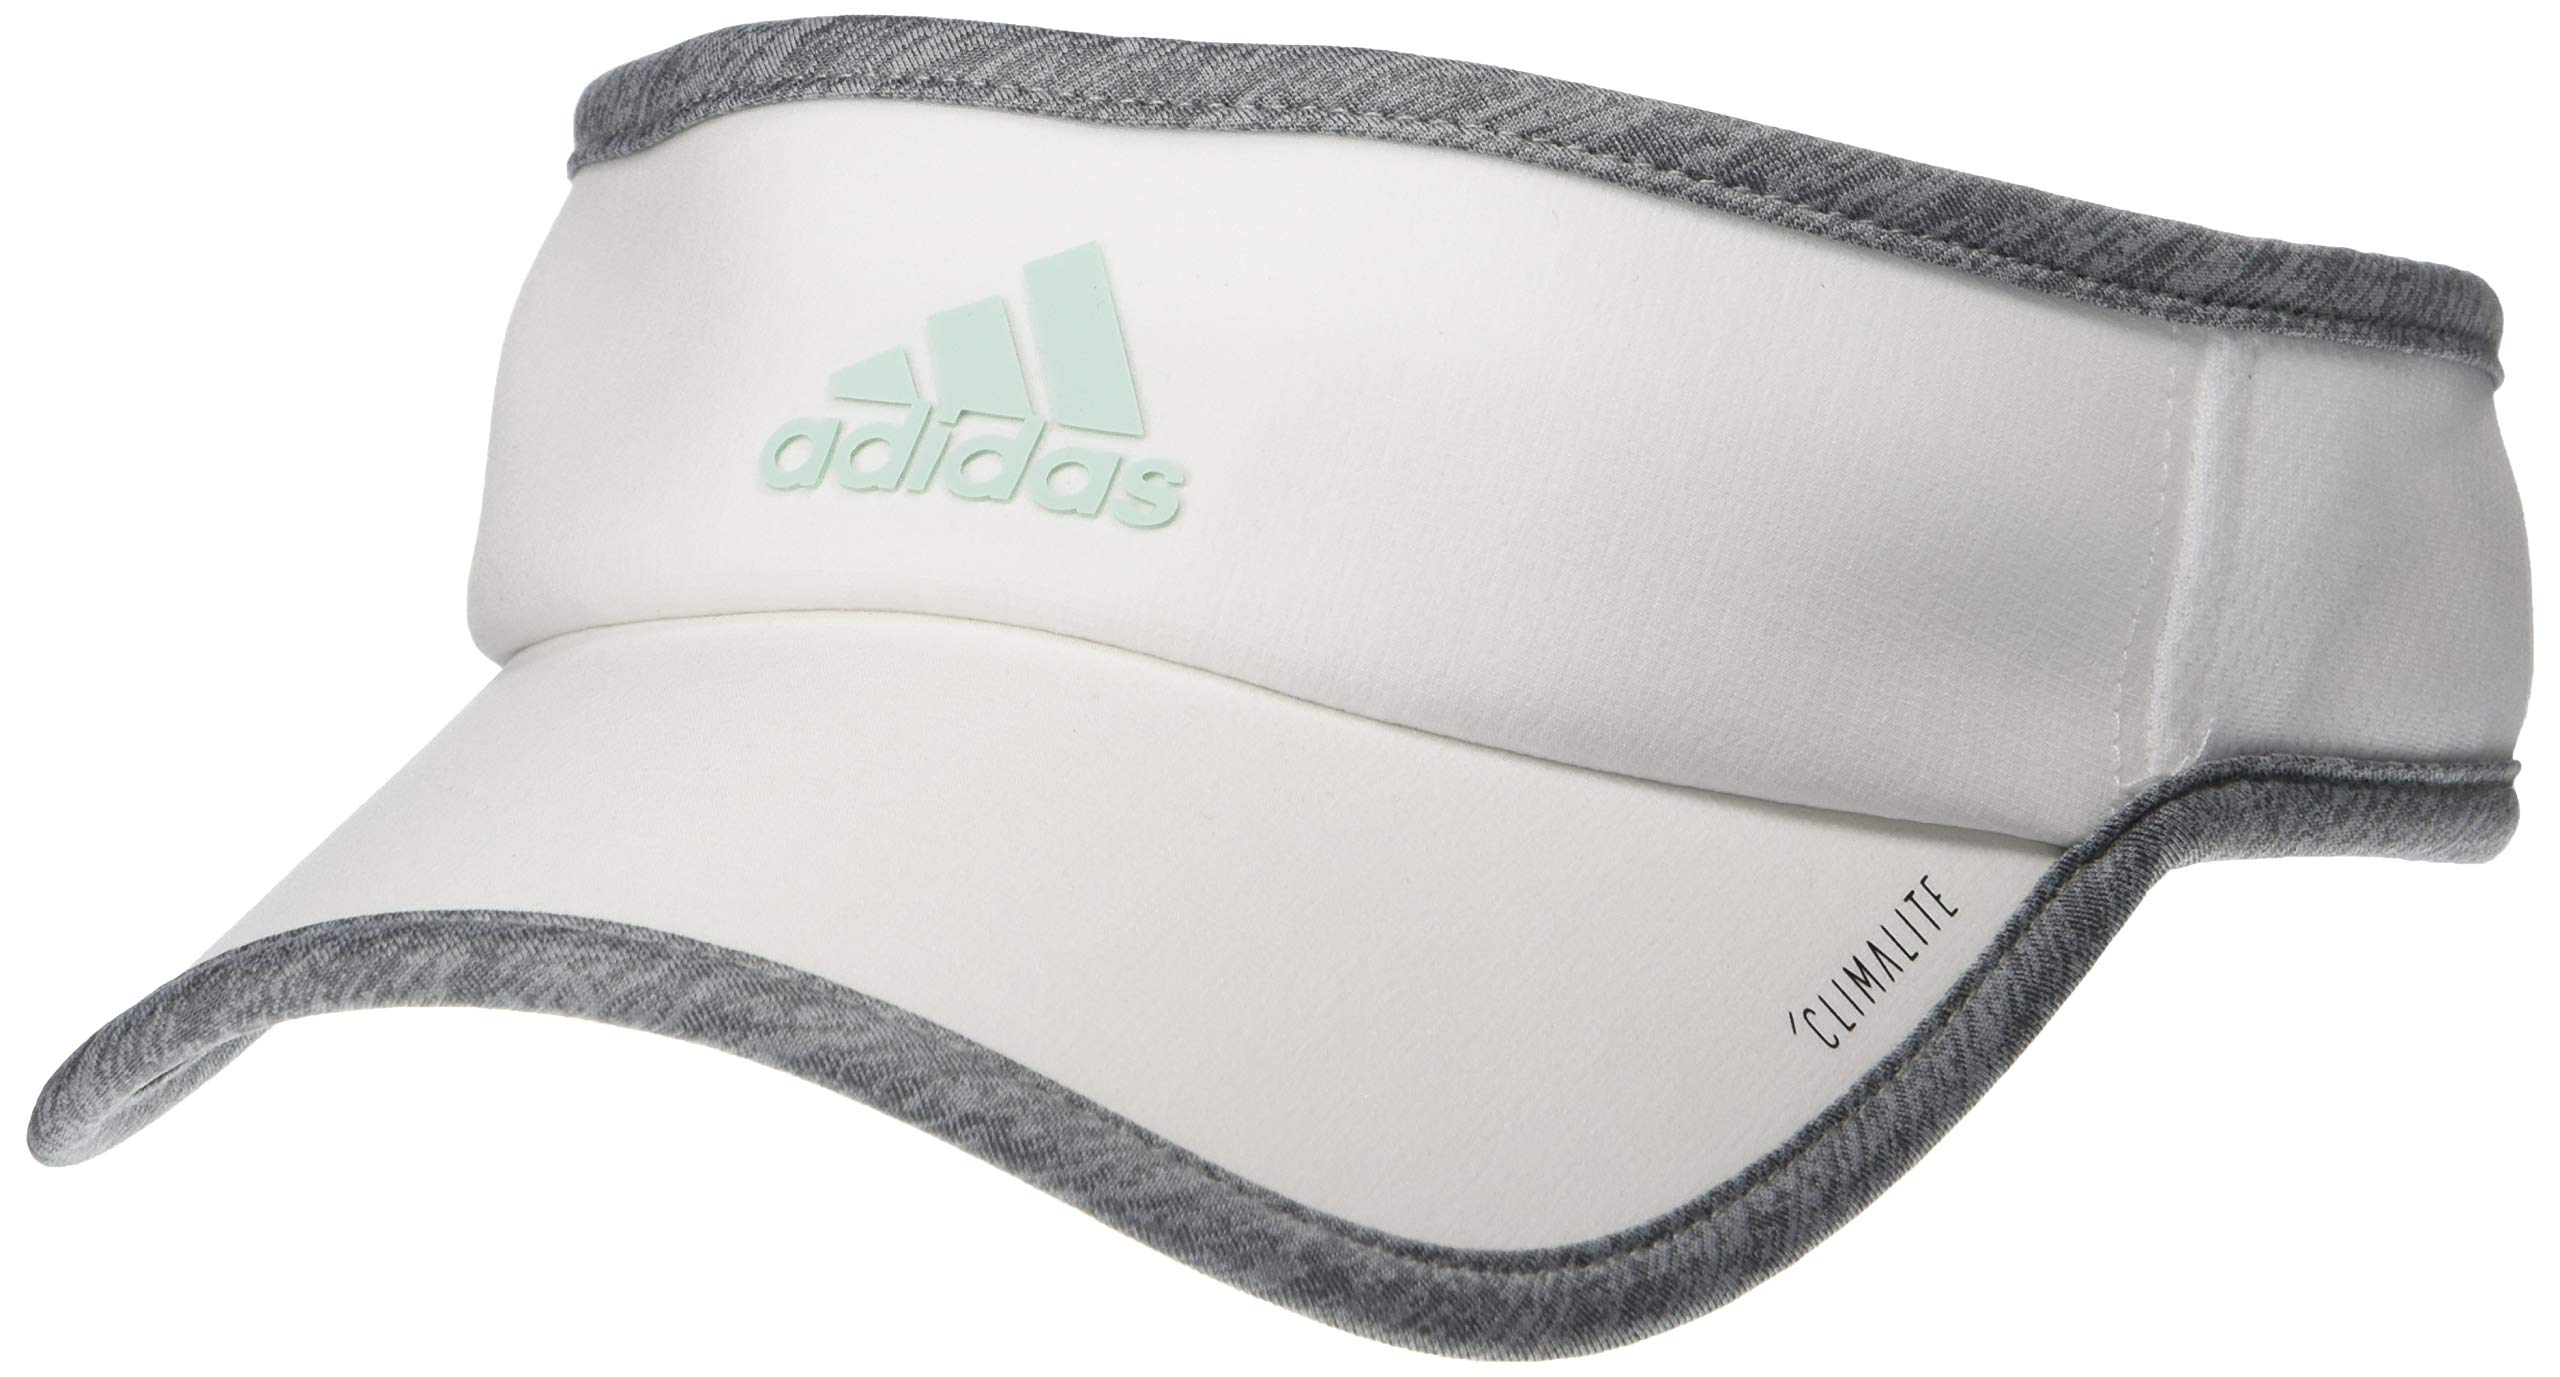 adidas Women's Superlite Performance Visor, White/Light Heather Grey/Clear Mint, ONE SIZE by adidas